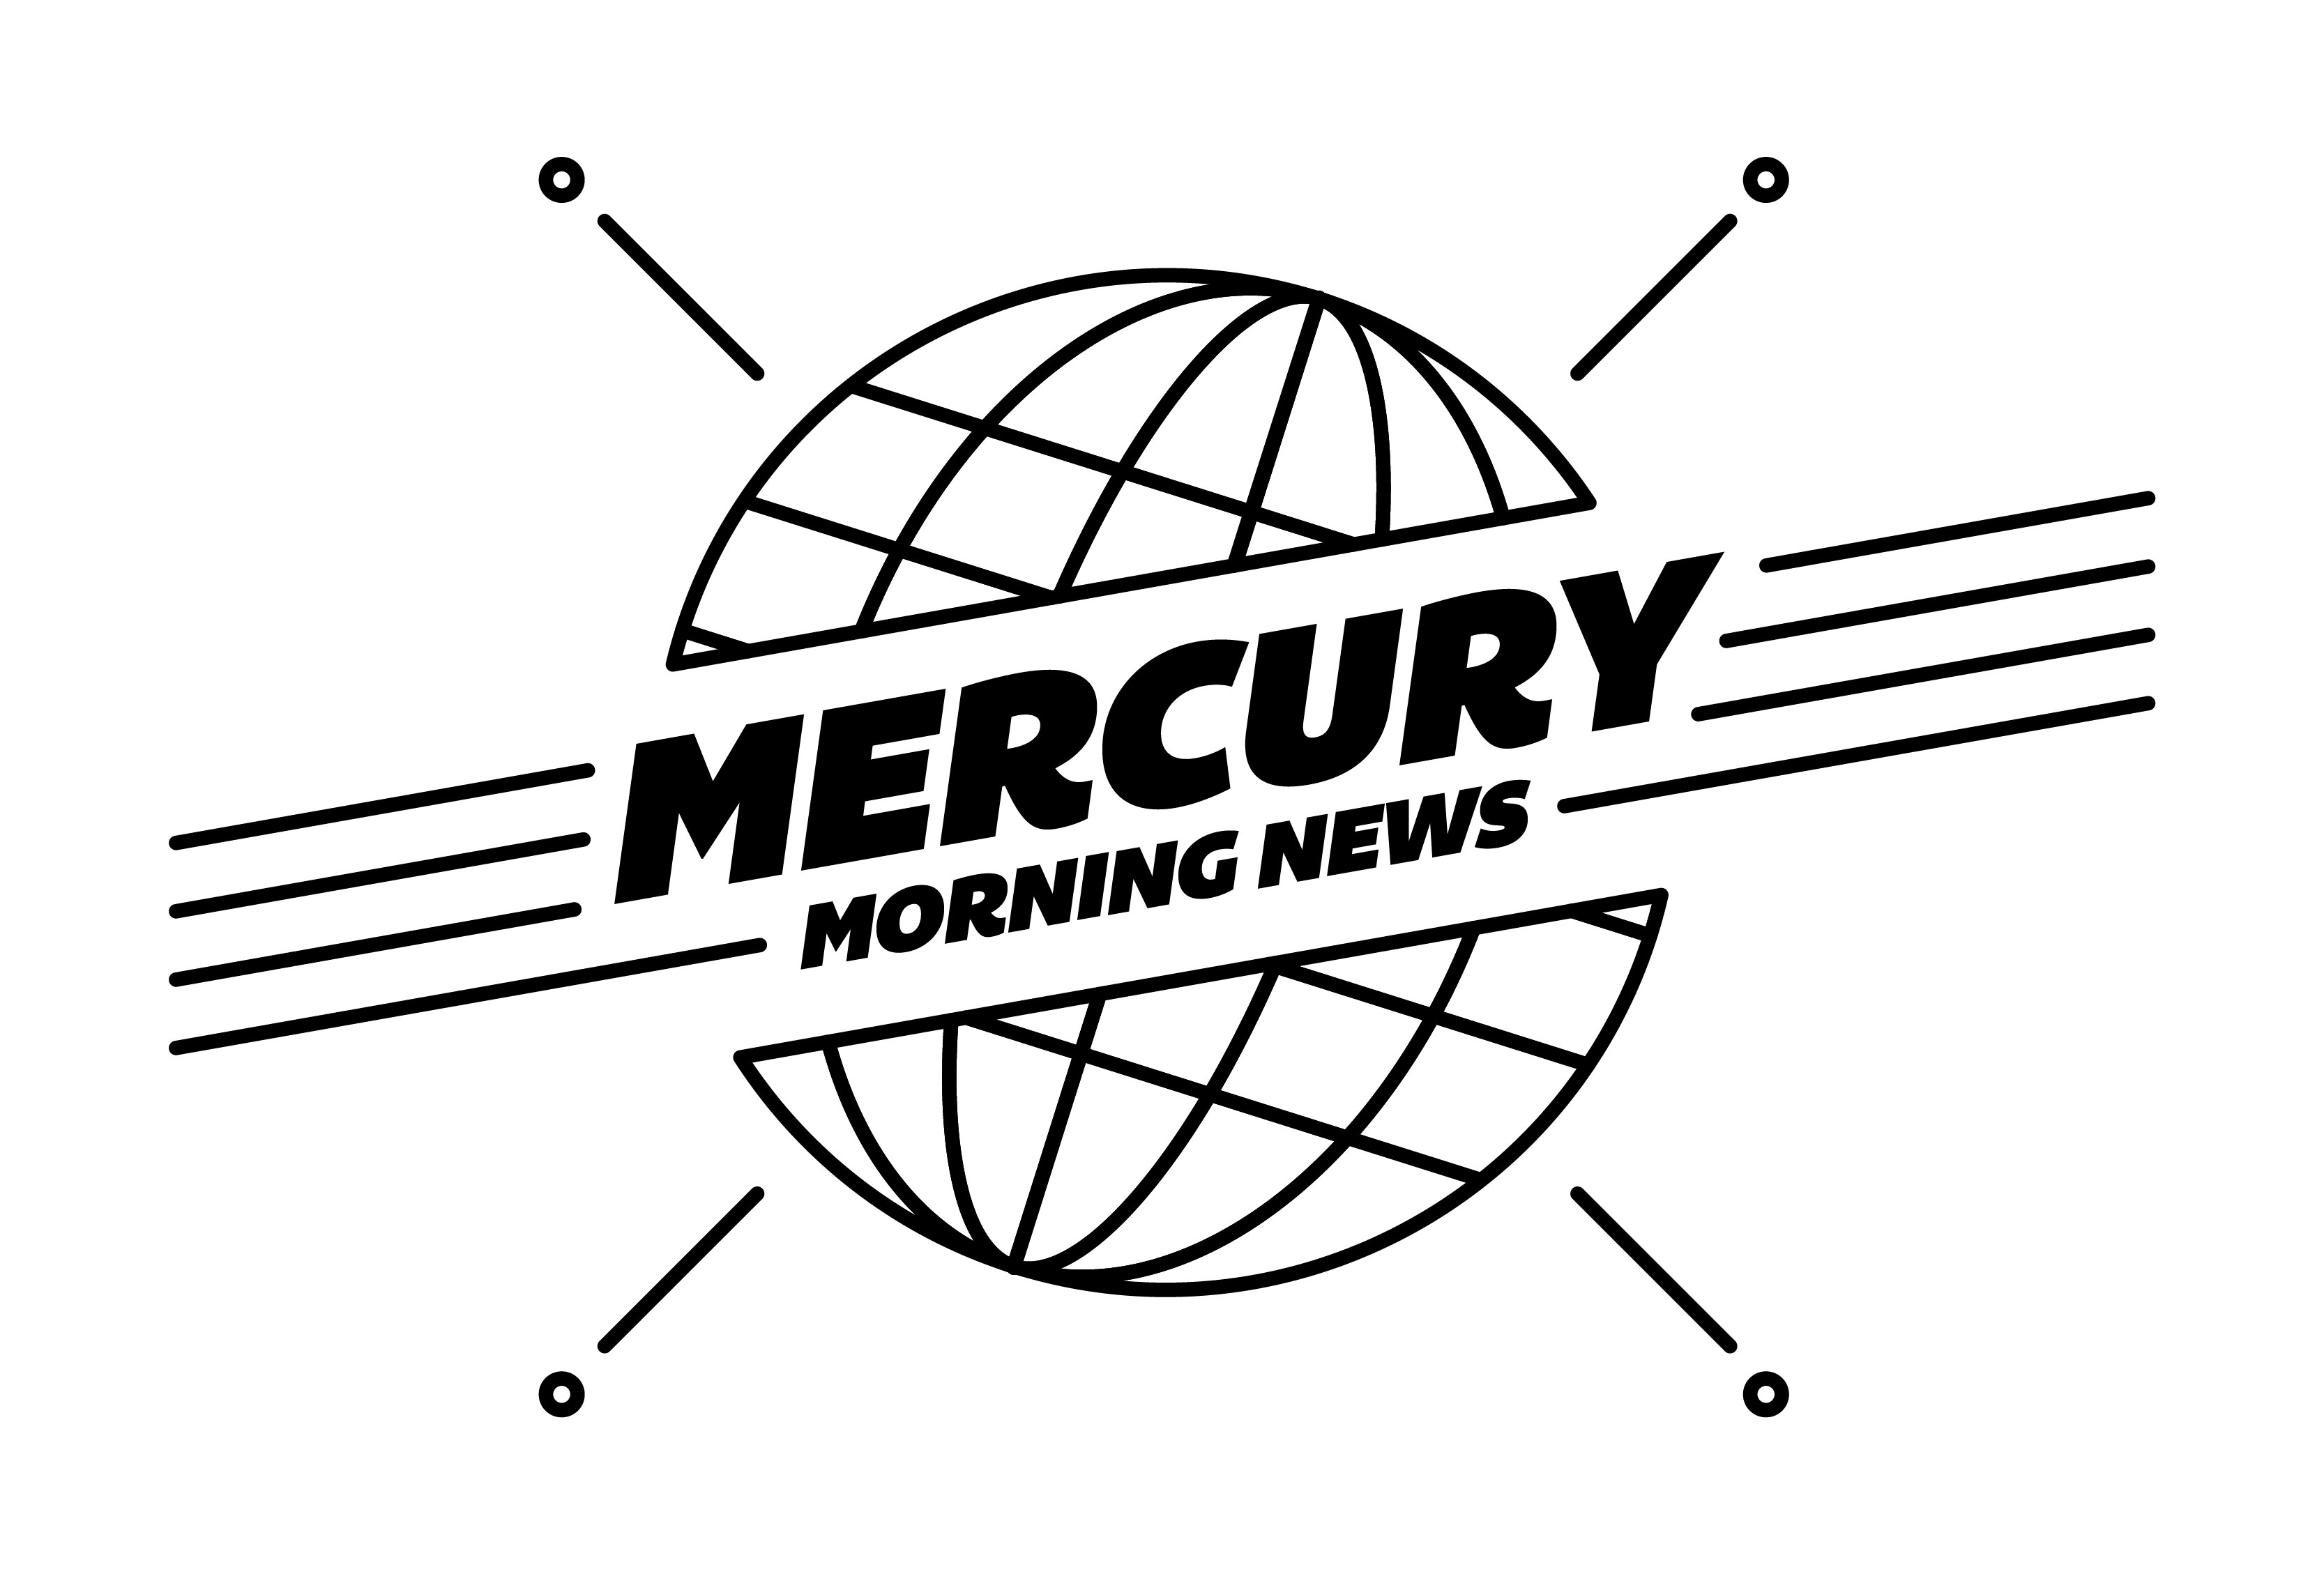 The Mercury morning news show 09/22